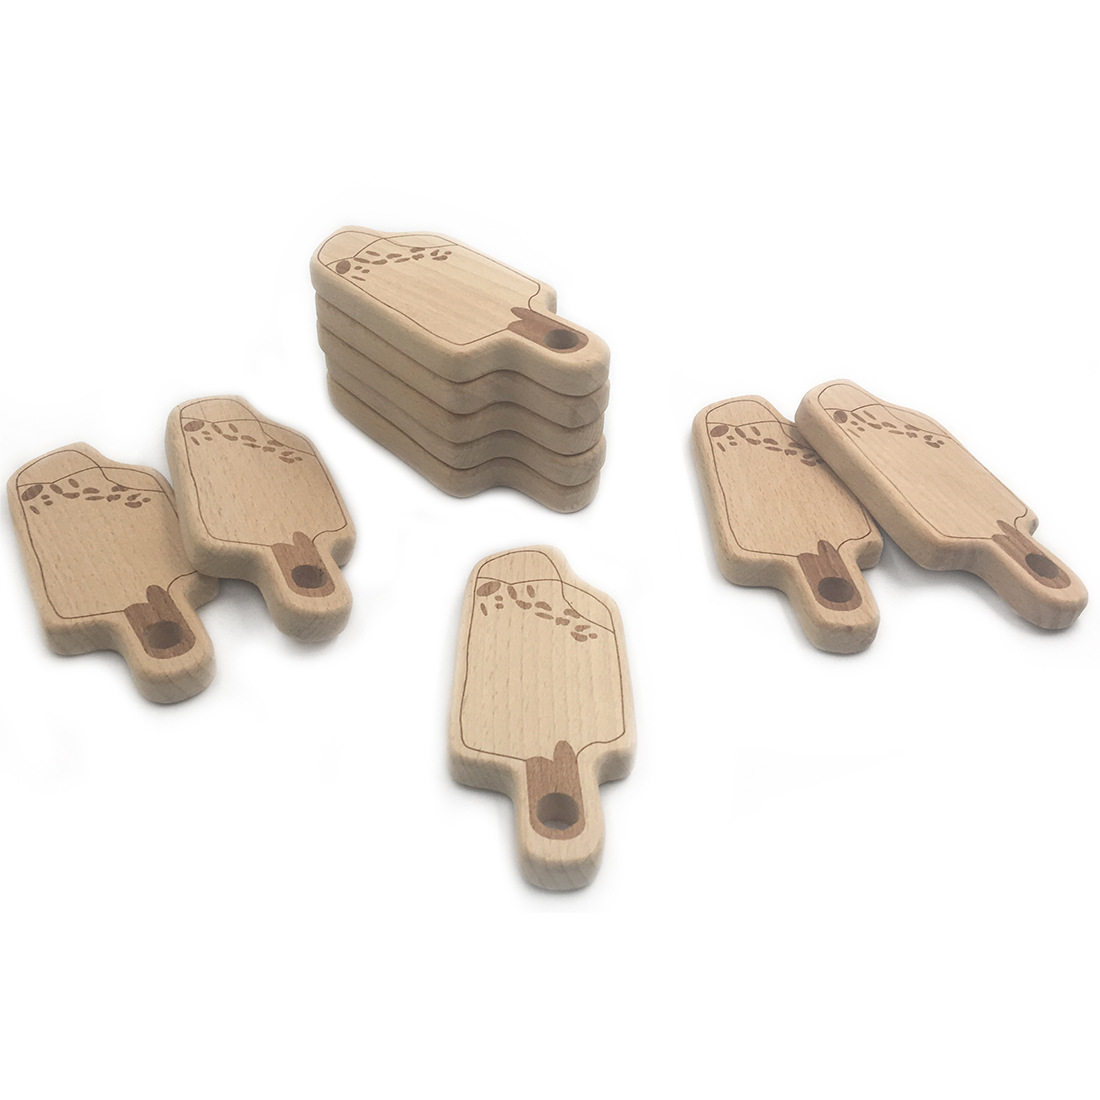 10pcs DIY Accessories baby Wooden Teether icecream pendent Natural Beech Wooden Toy Hand Cut Teether